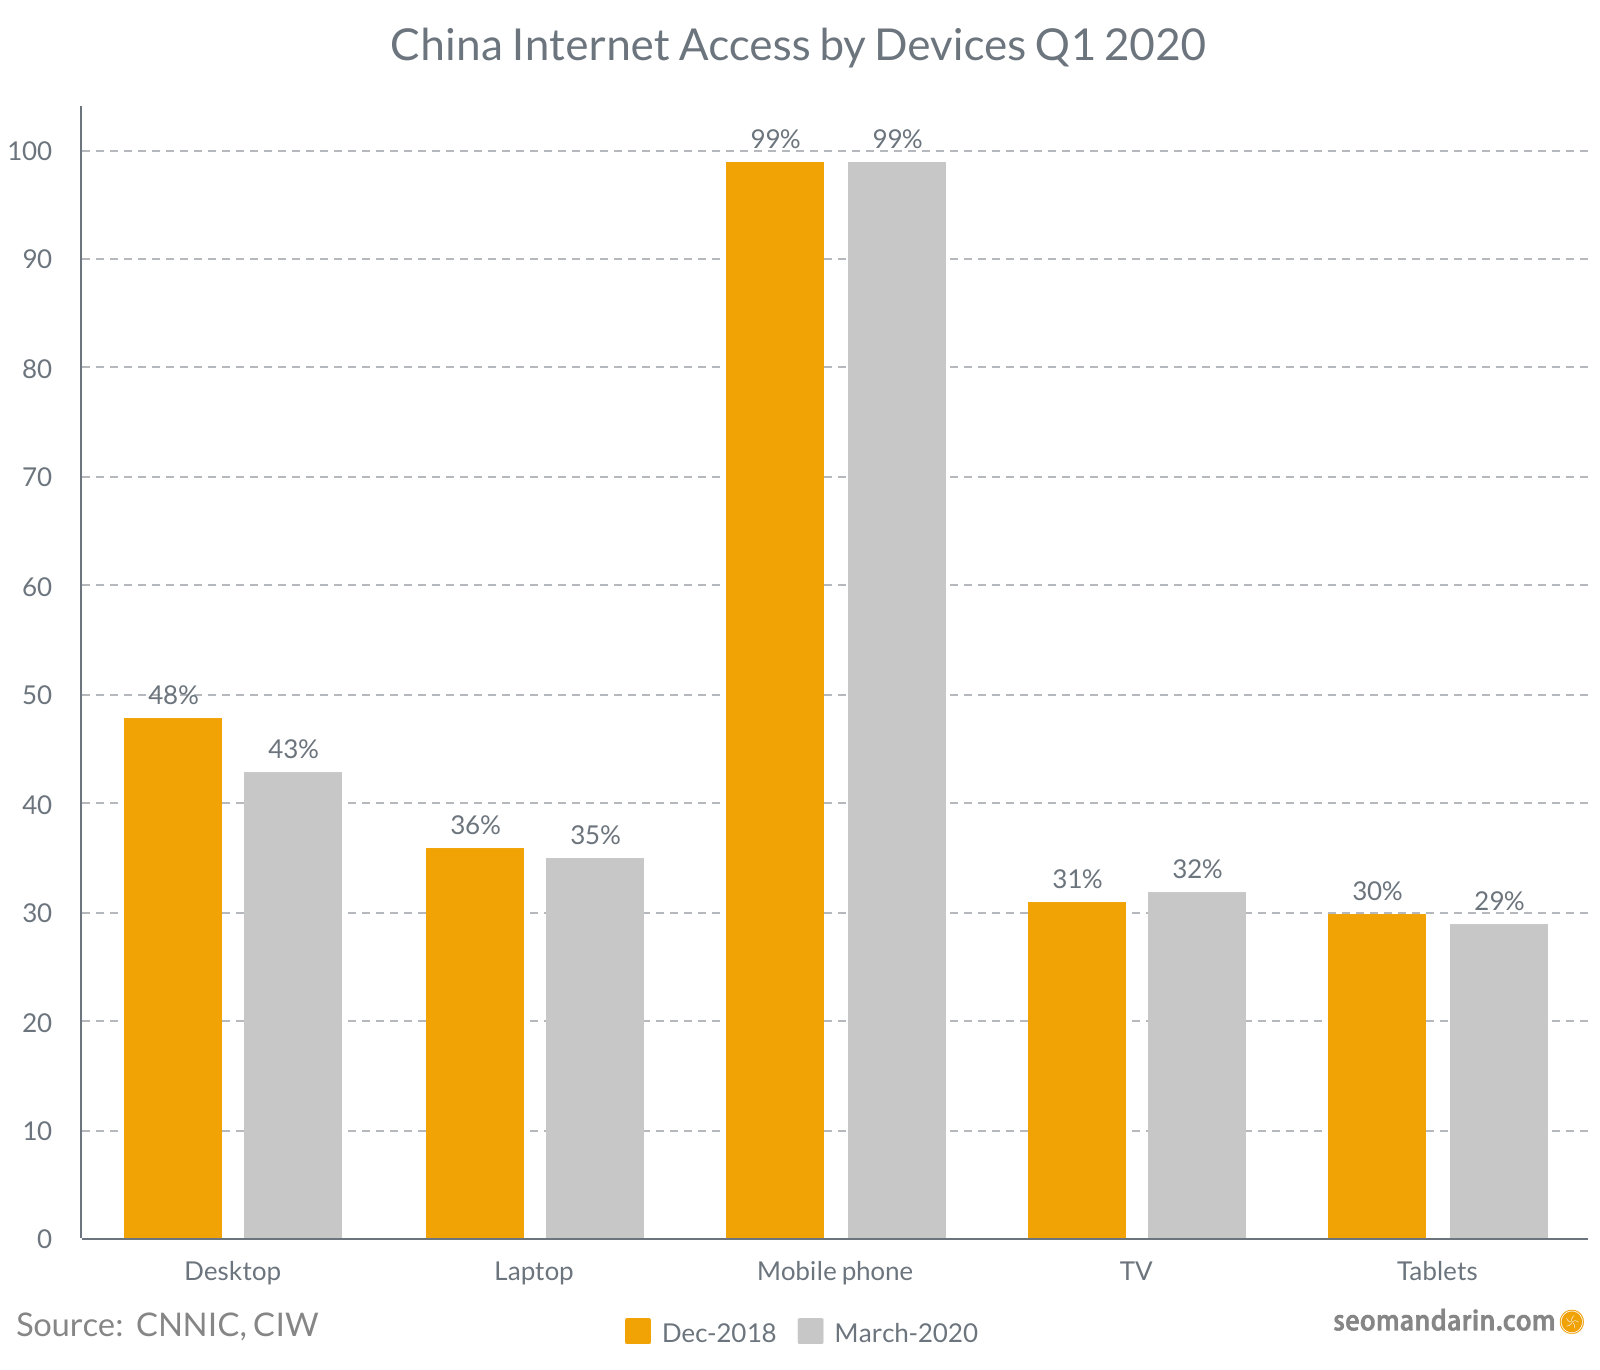 China internet access by devices 2020